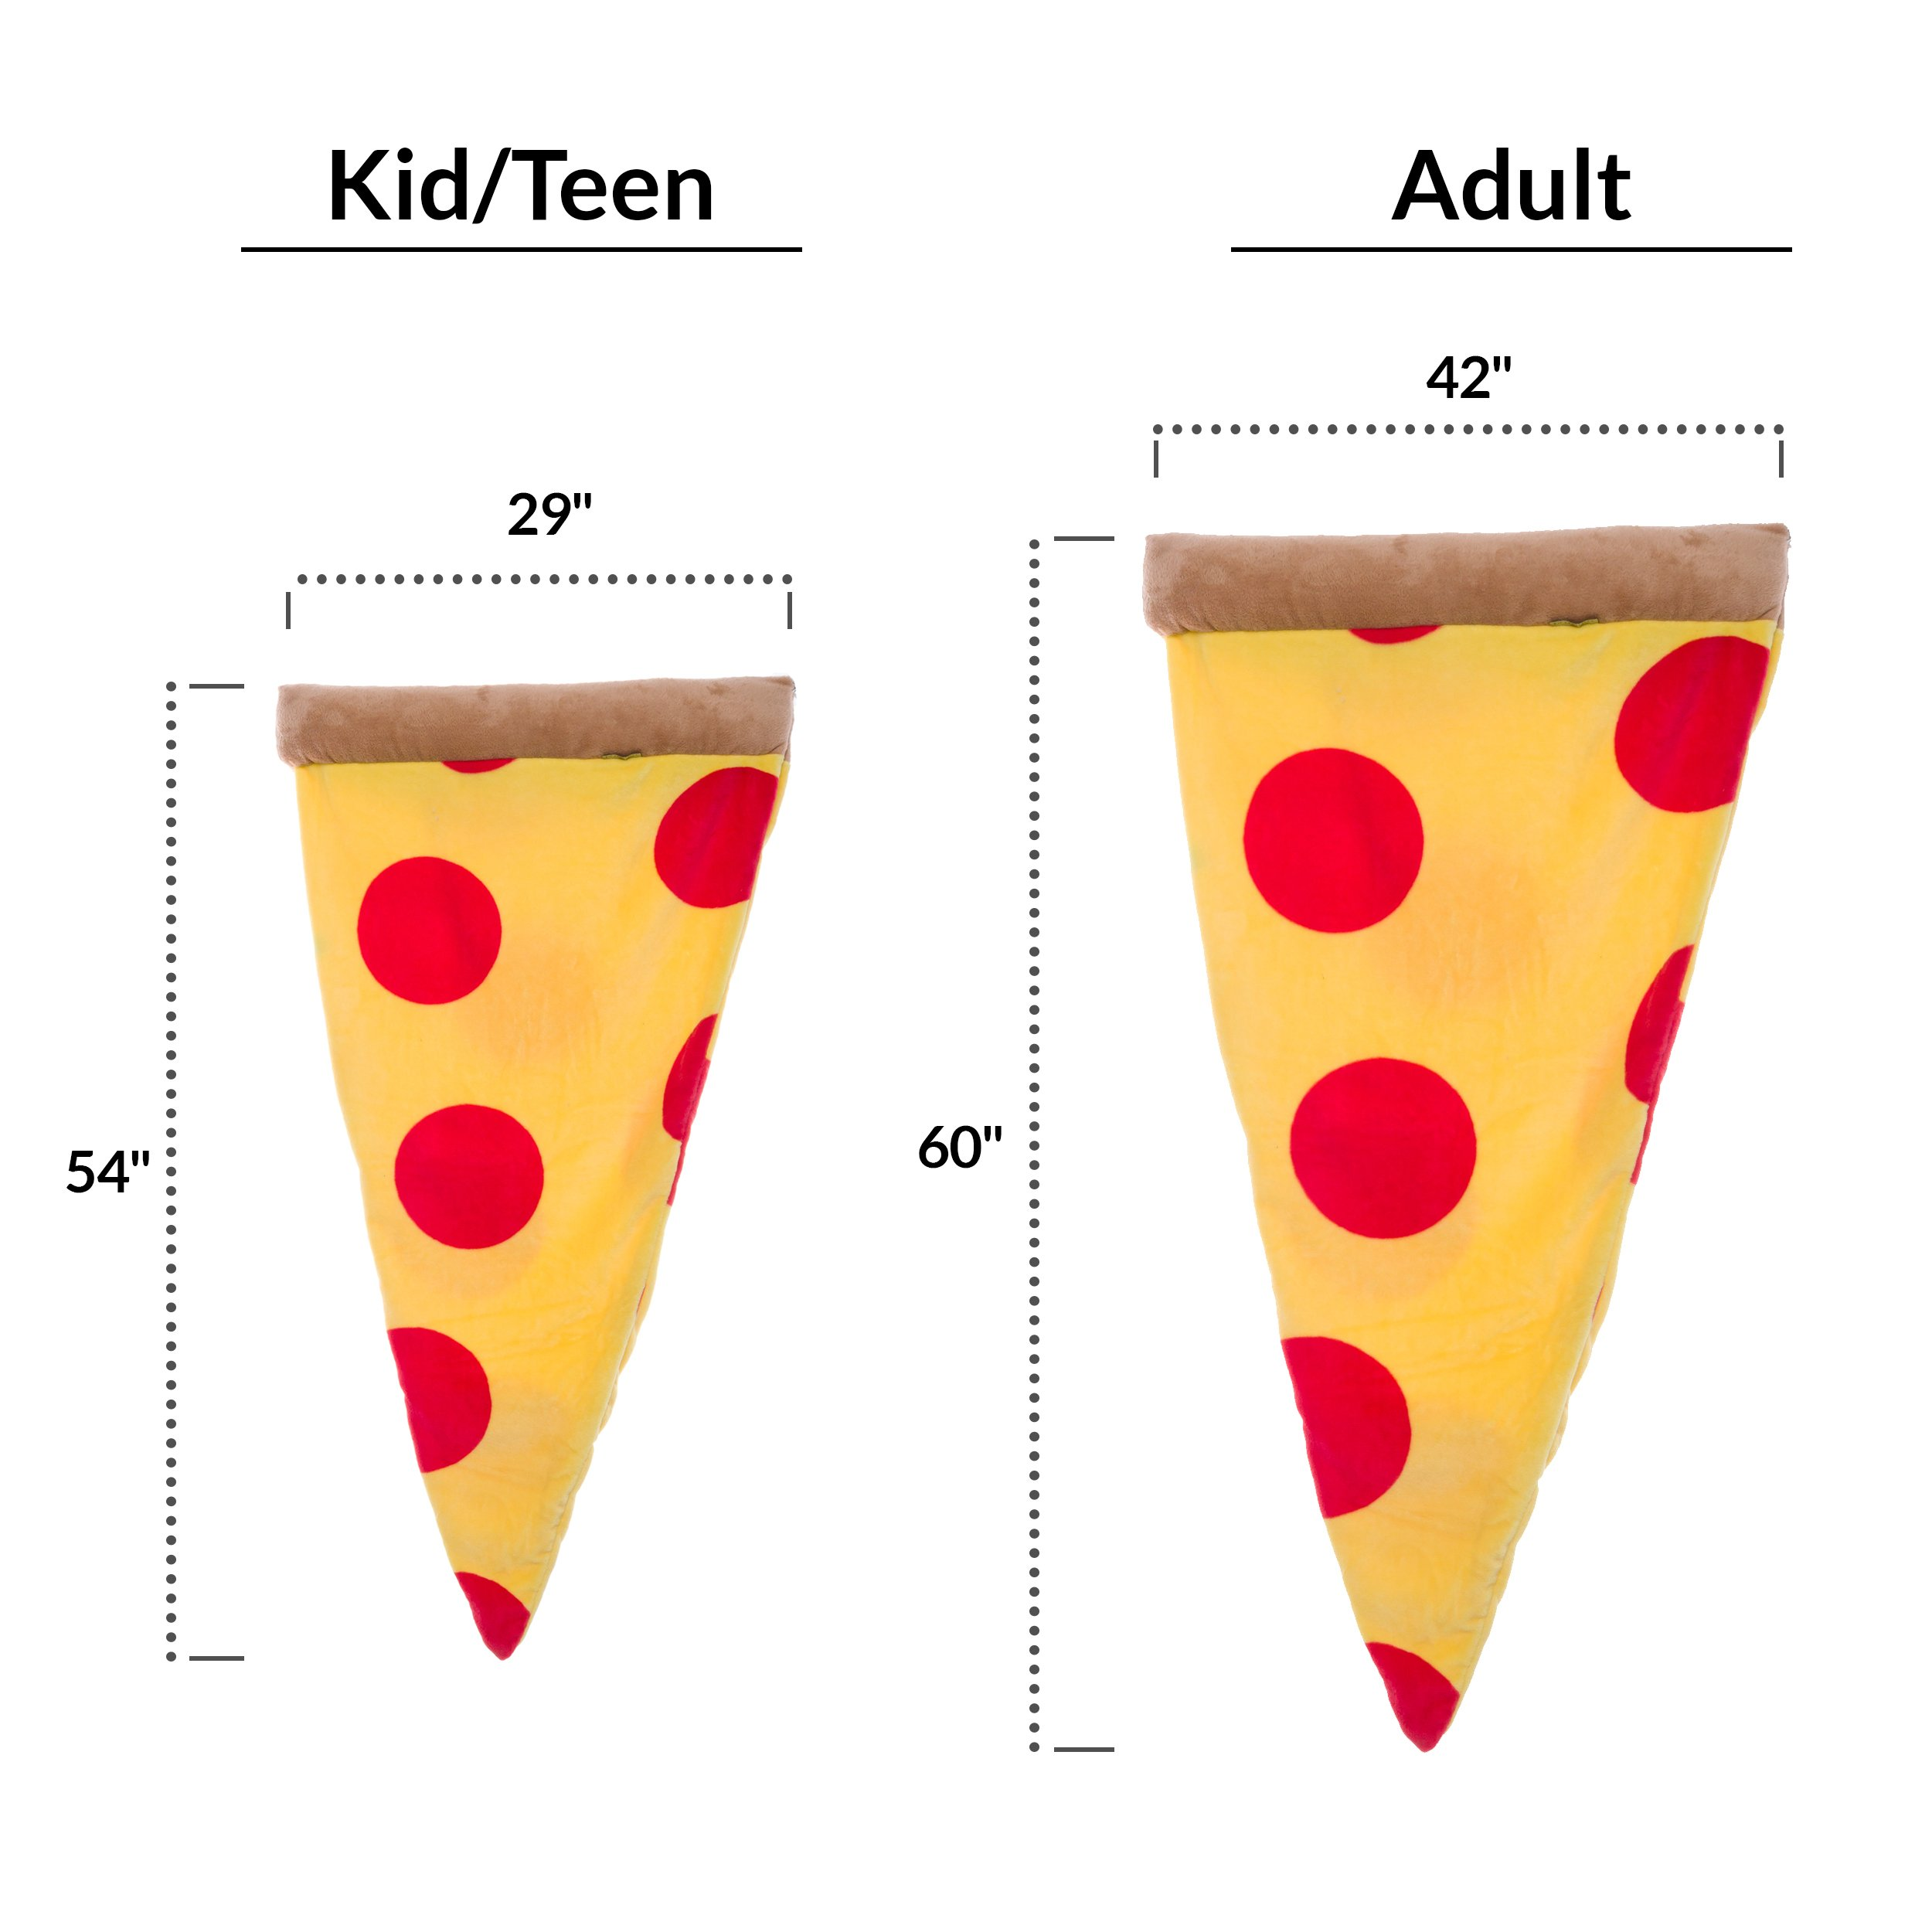 Silver Lilly Pizza Sleeping Bag - Plush Fleece Giant Pizza Slice Blanket for Kids and Adults by (Adult) by Silver Lilly (Image #6)